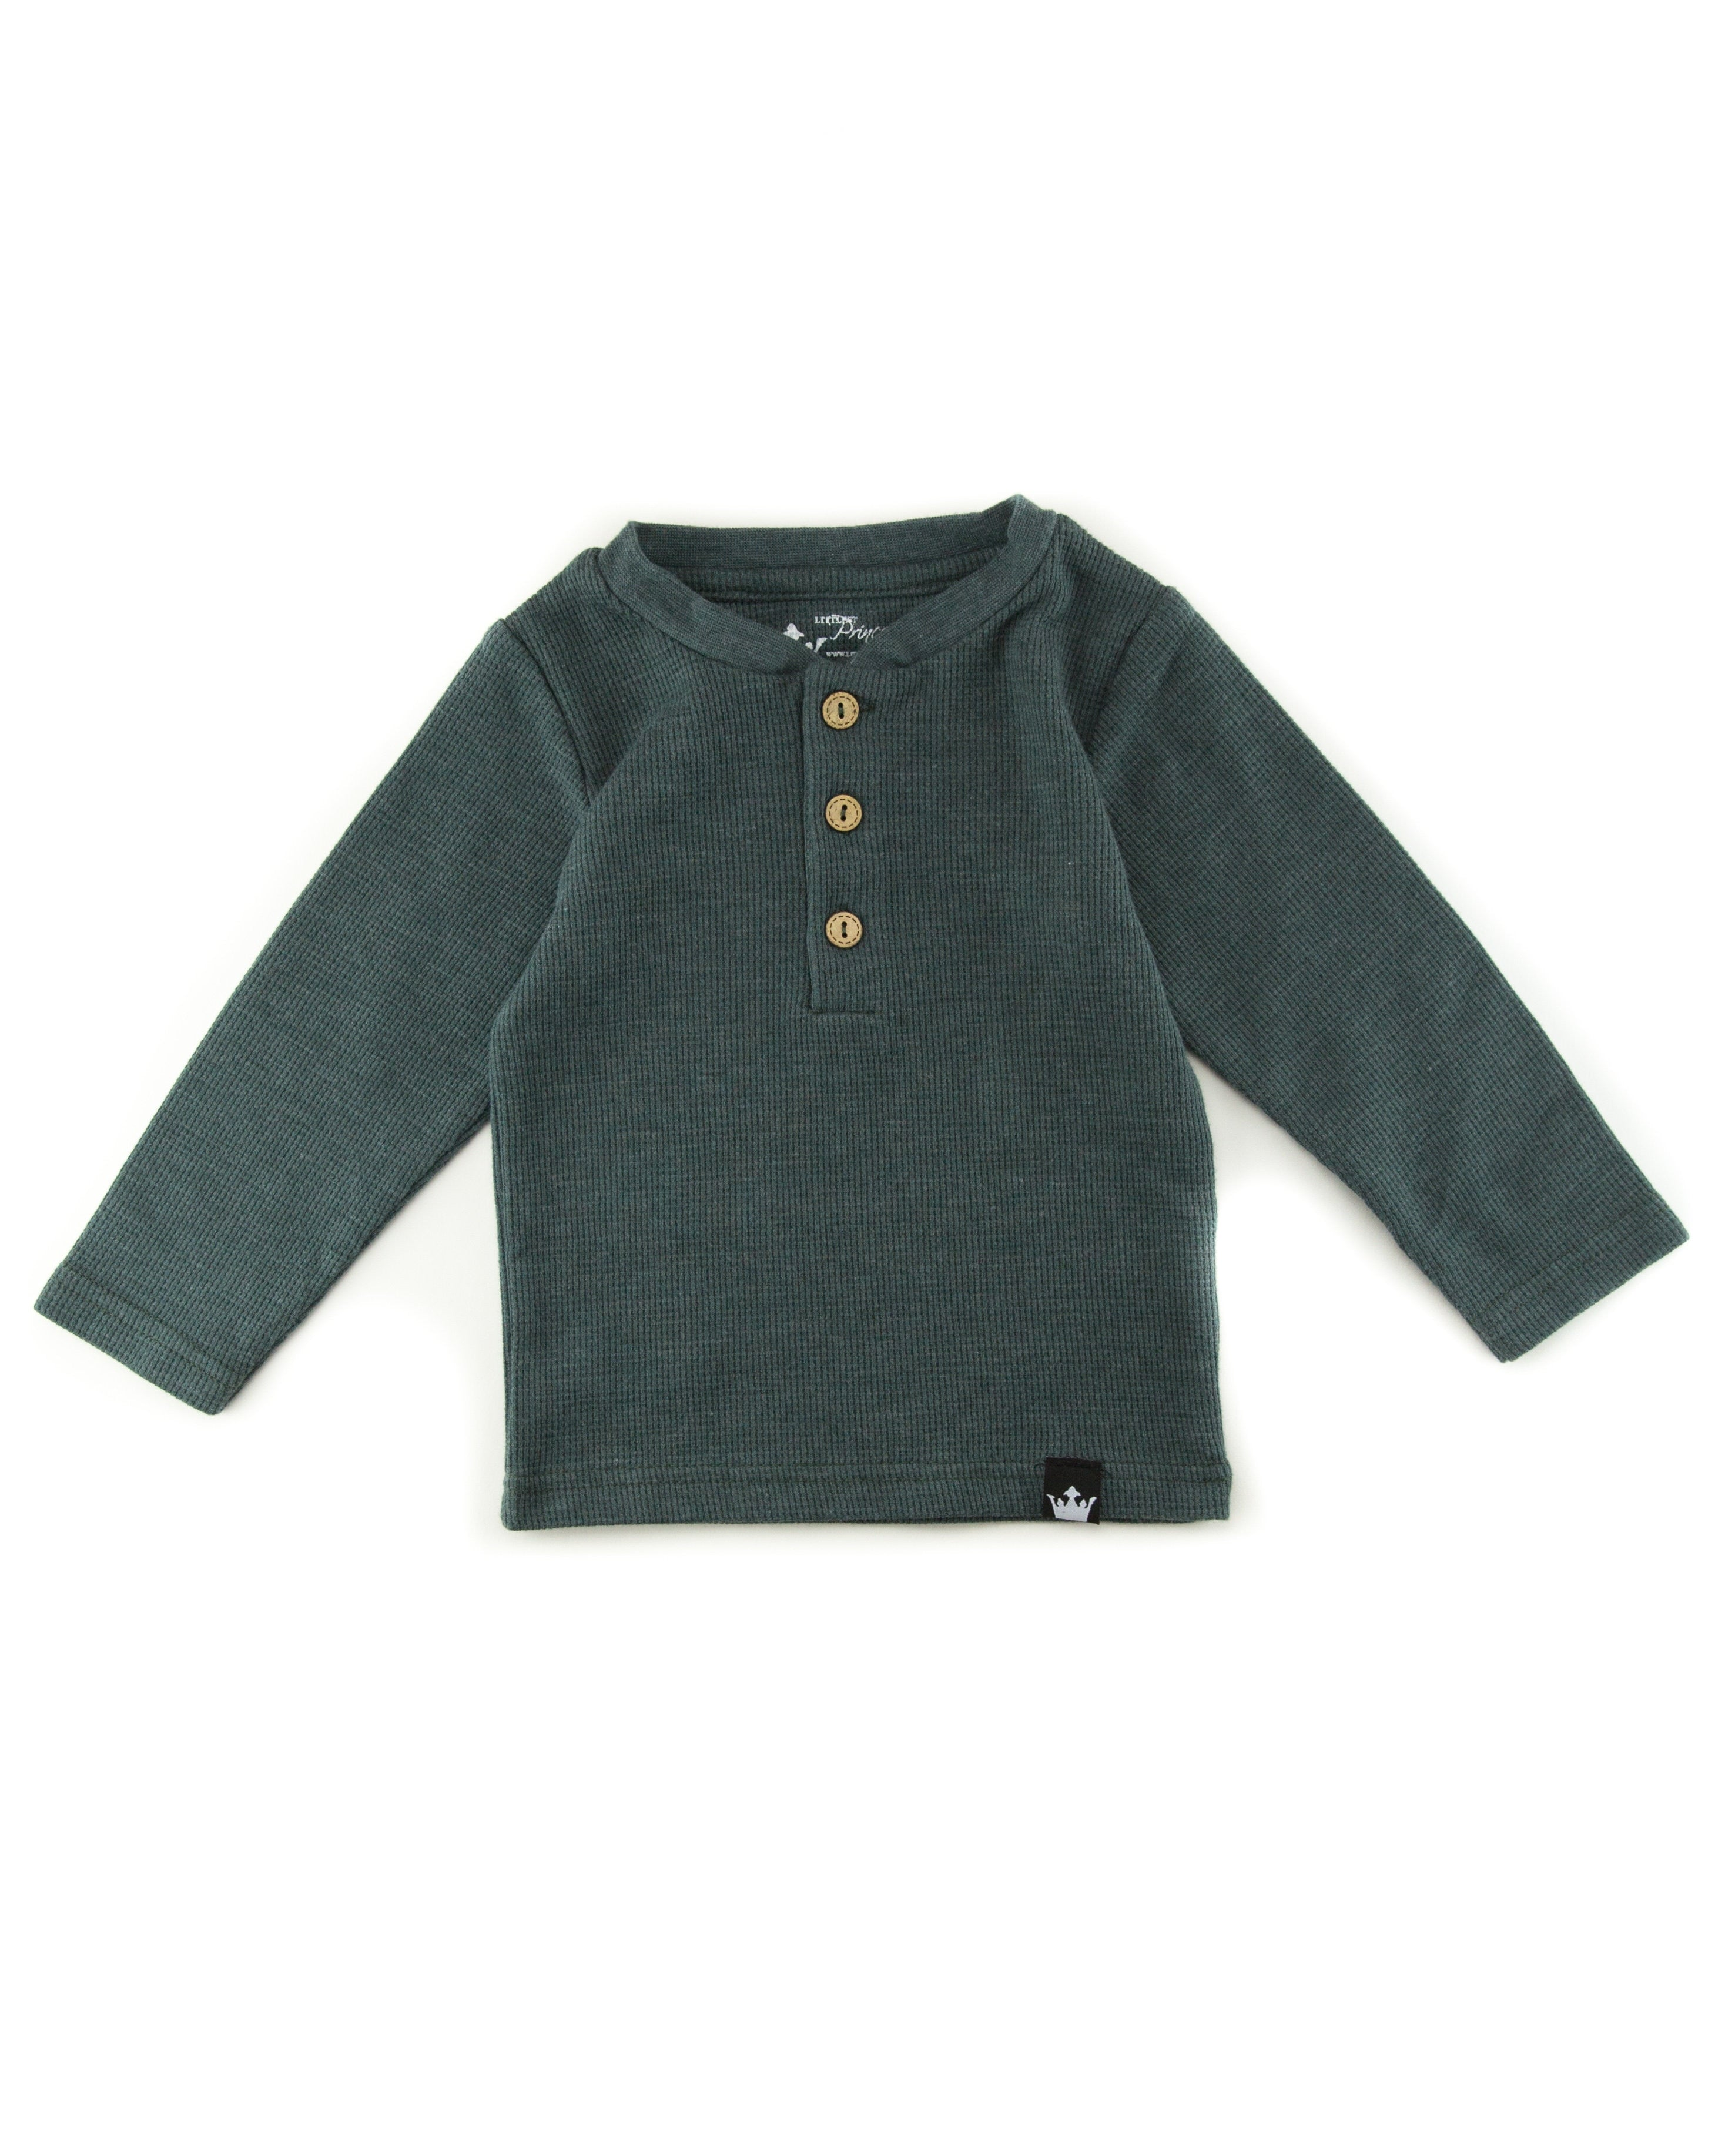 charcoal-thermal-henley-shirt-front.jpg